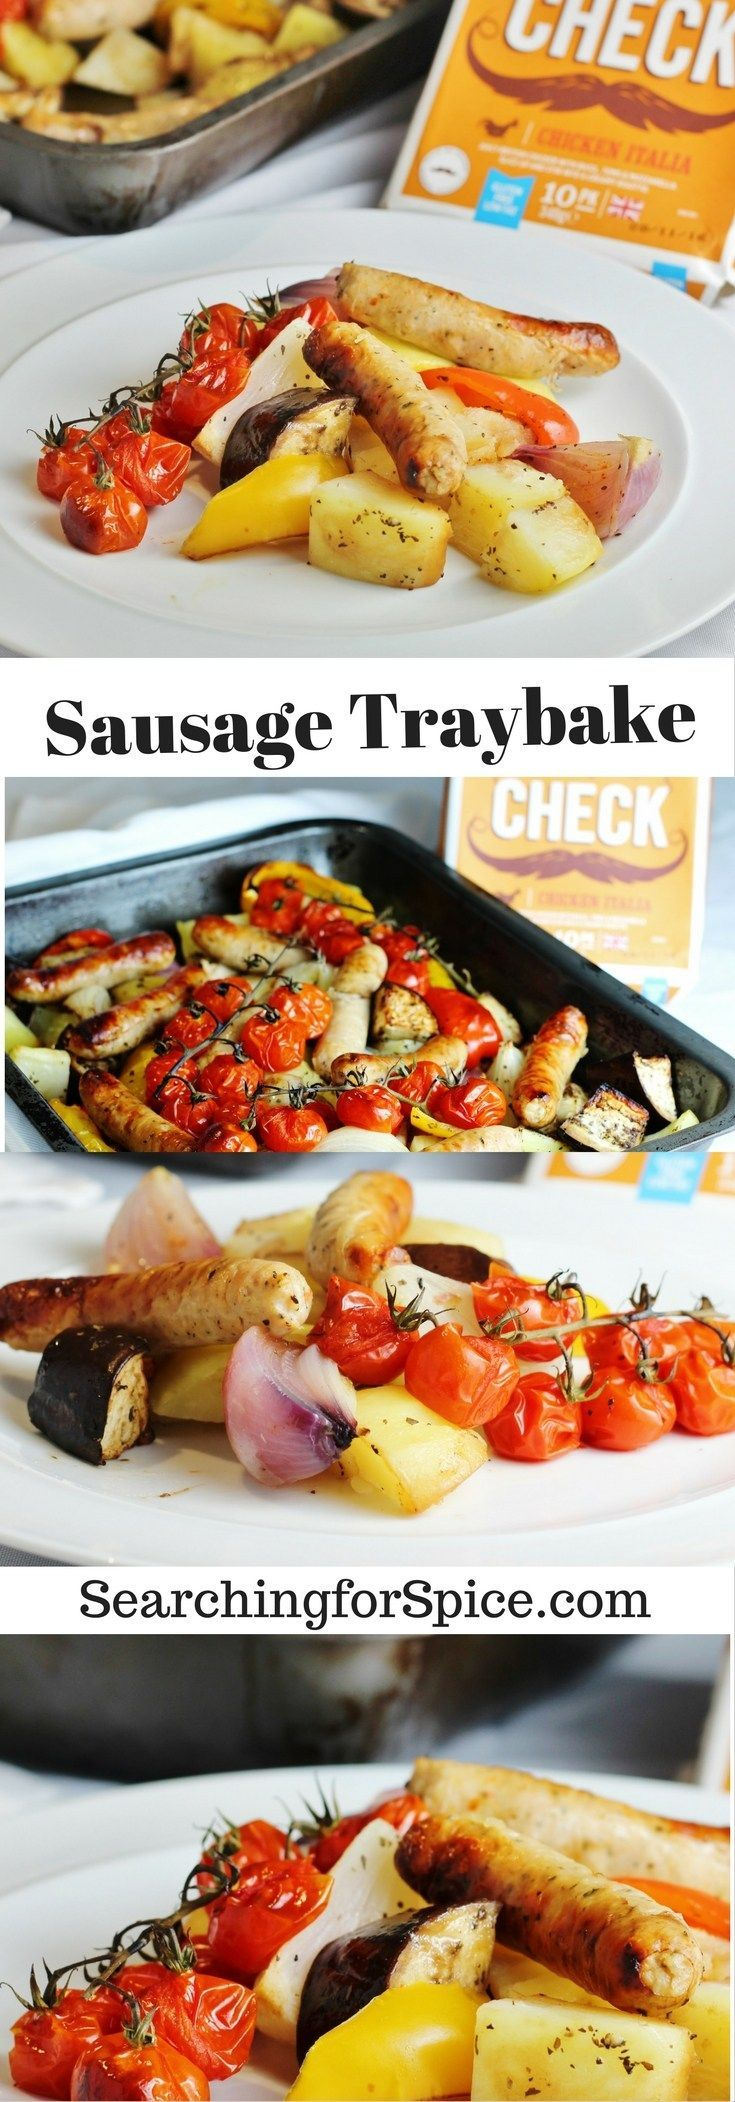 This easy sausage traybake recipe is perfect for a simple midweek meal.